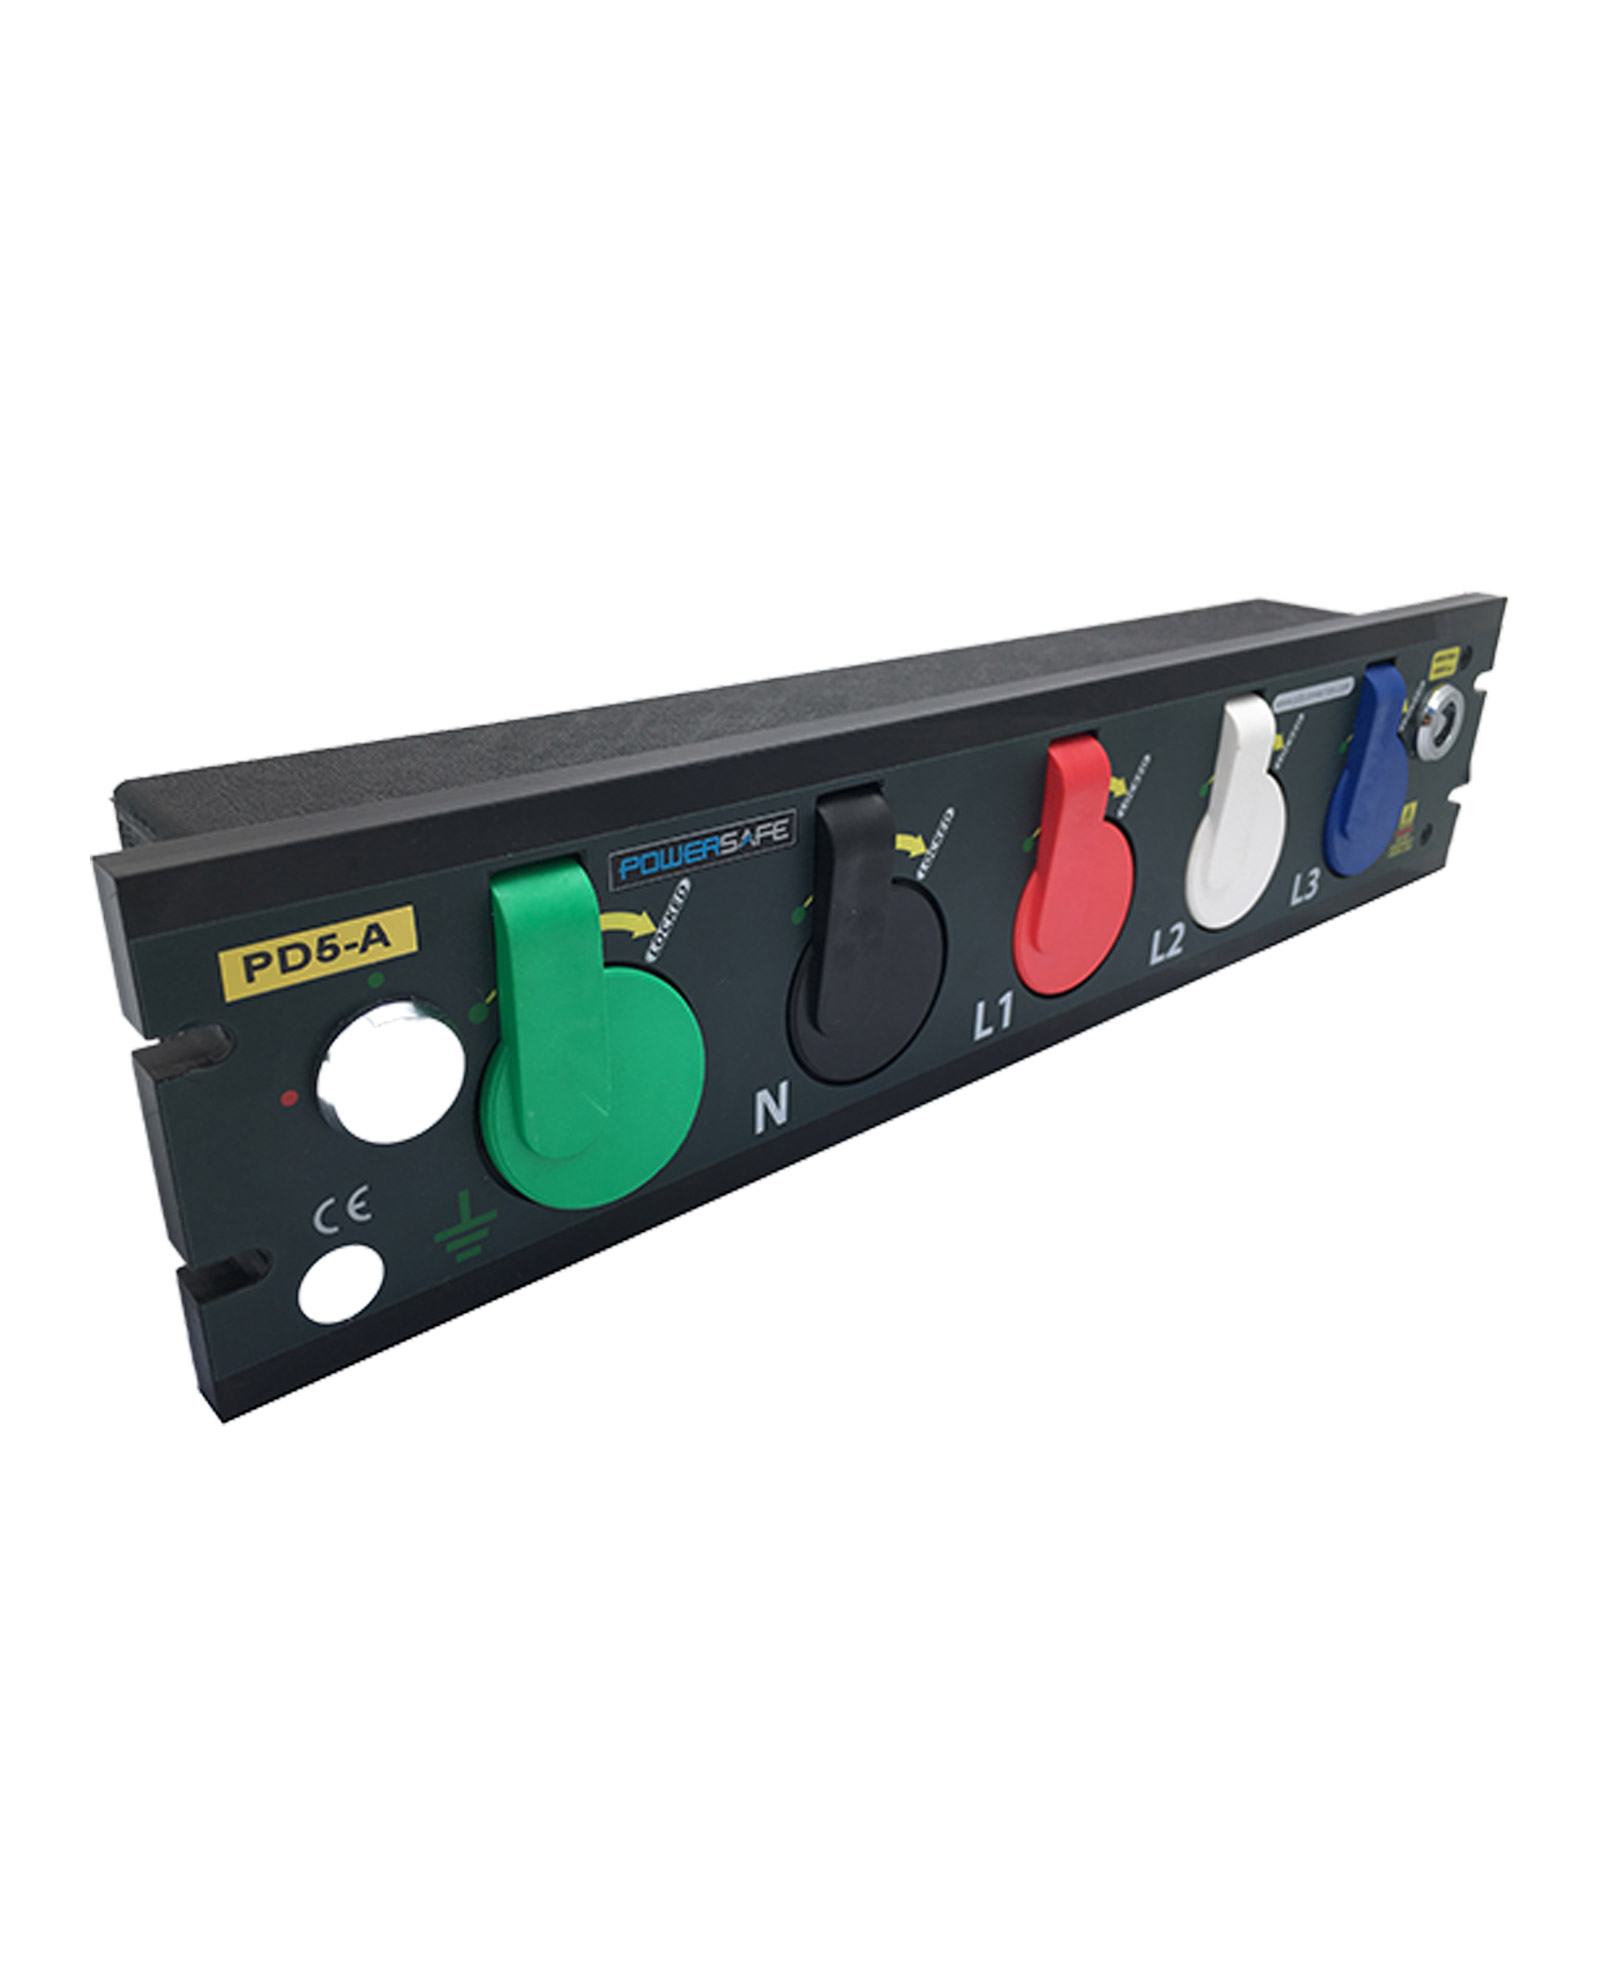 800a Prefabricated Rack Mount Powersafe Outlet Box 5 Pole